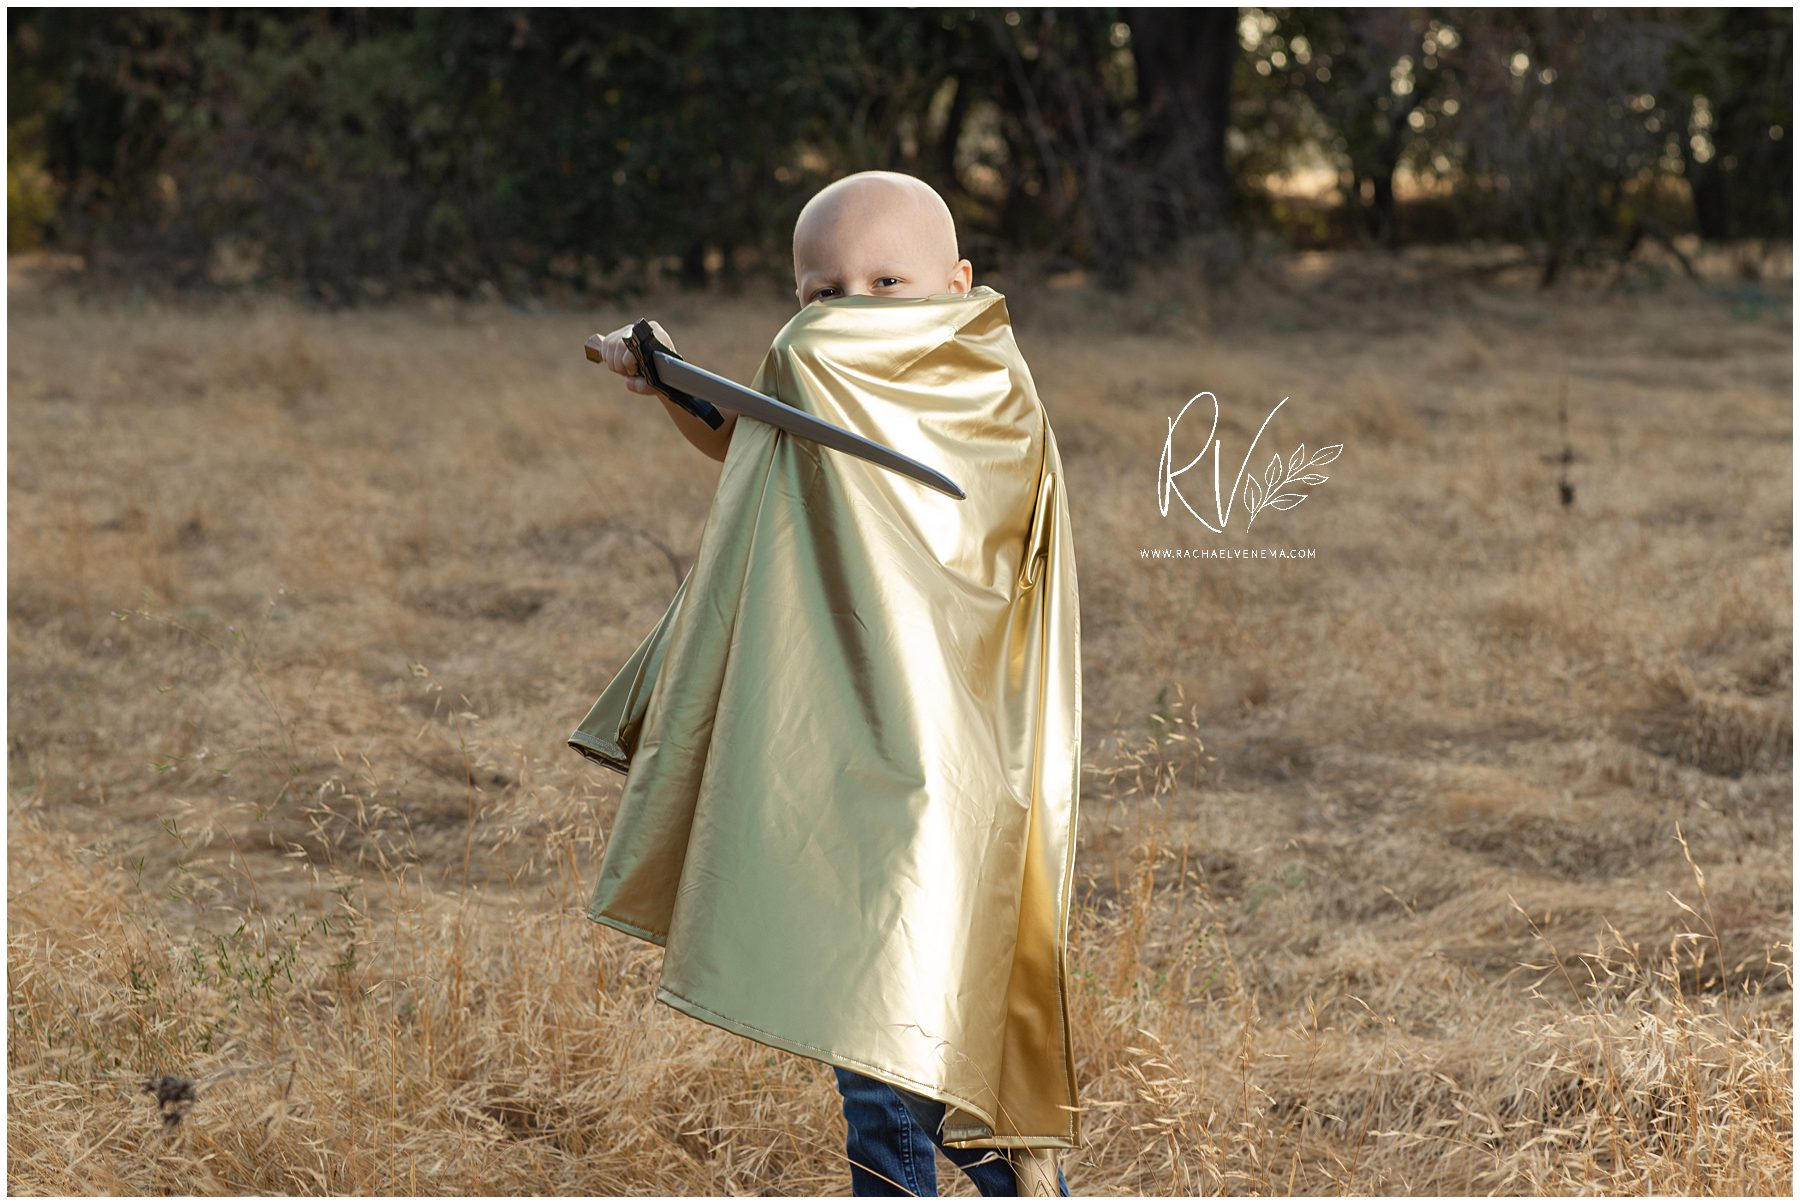 Family photographer Rachael Venema takes a family portrait for the Gold Hope Project